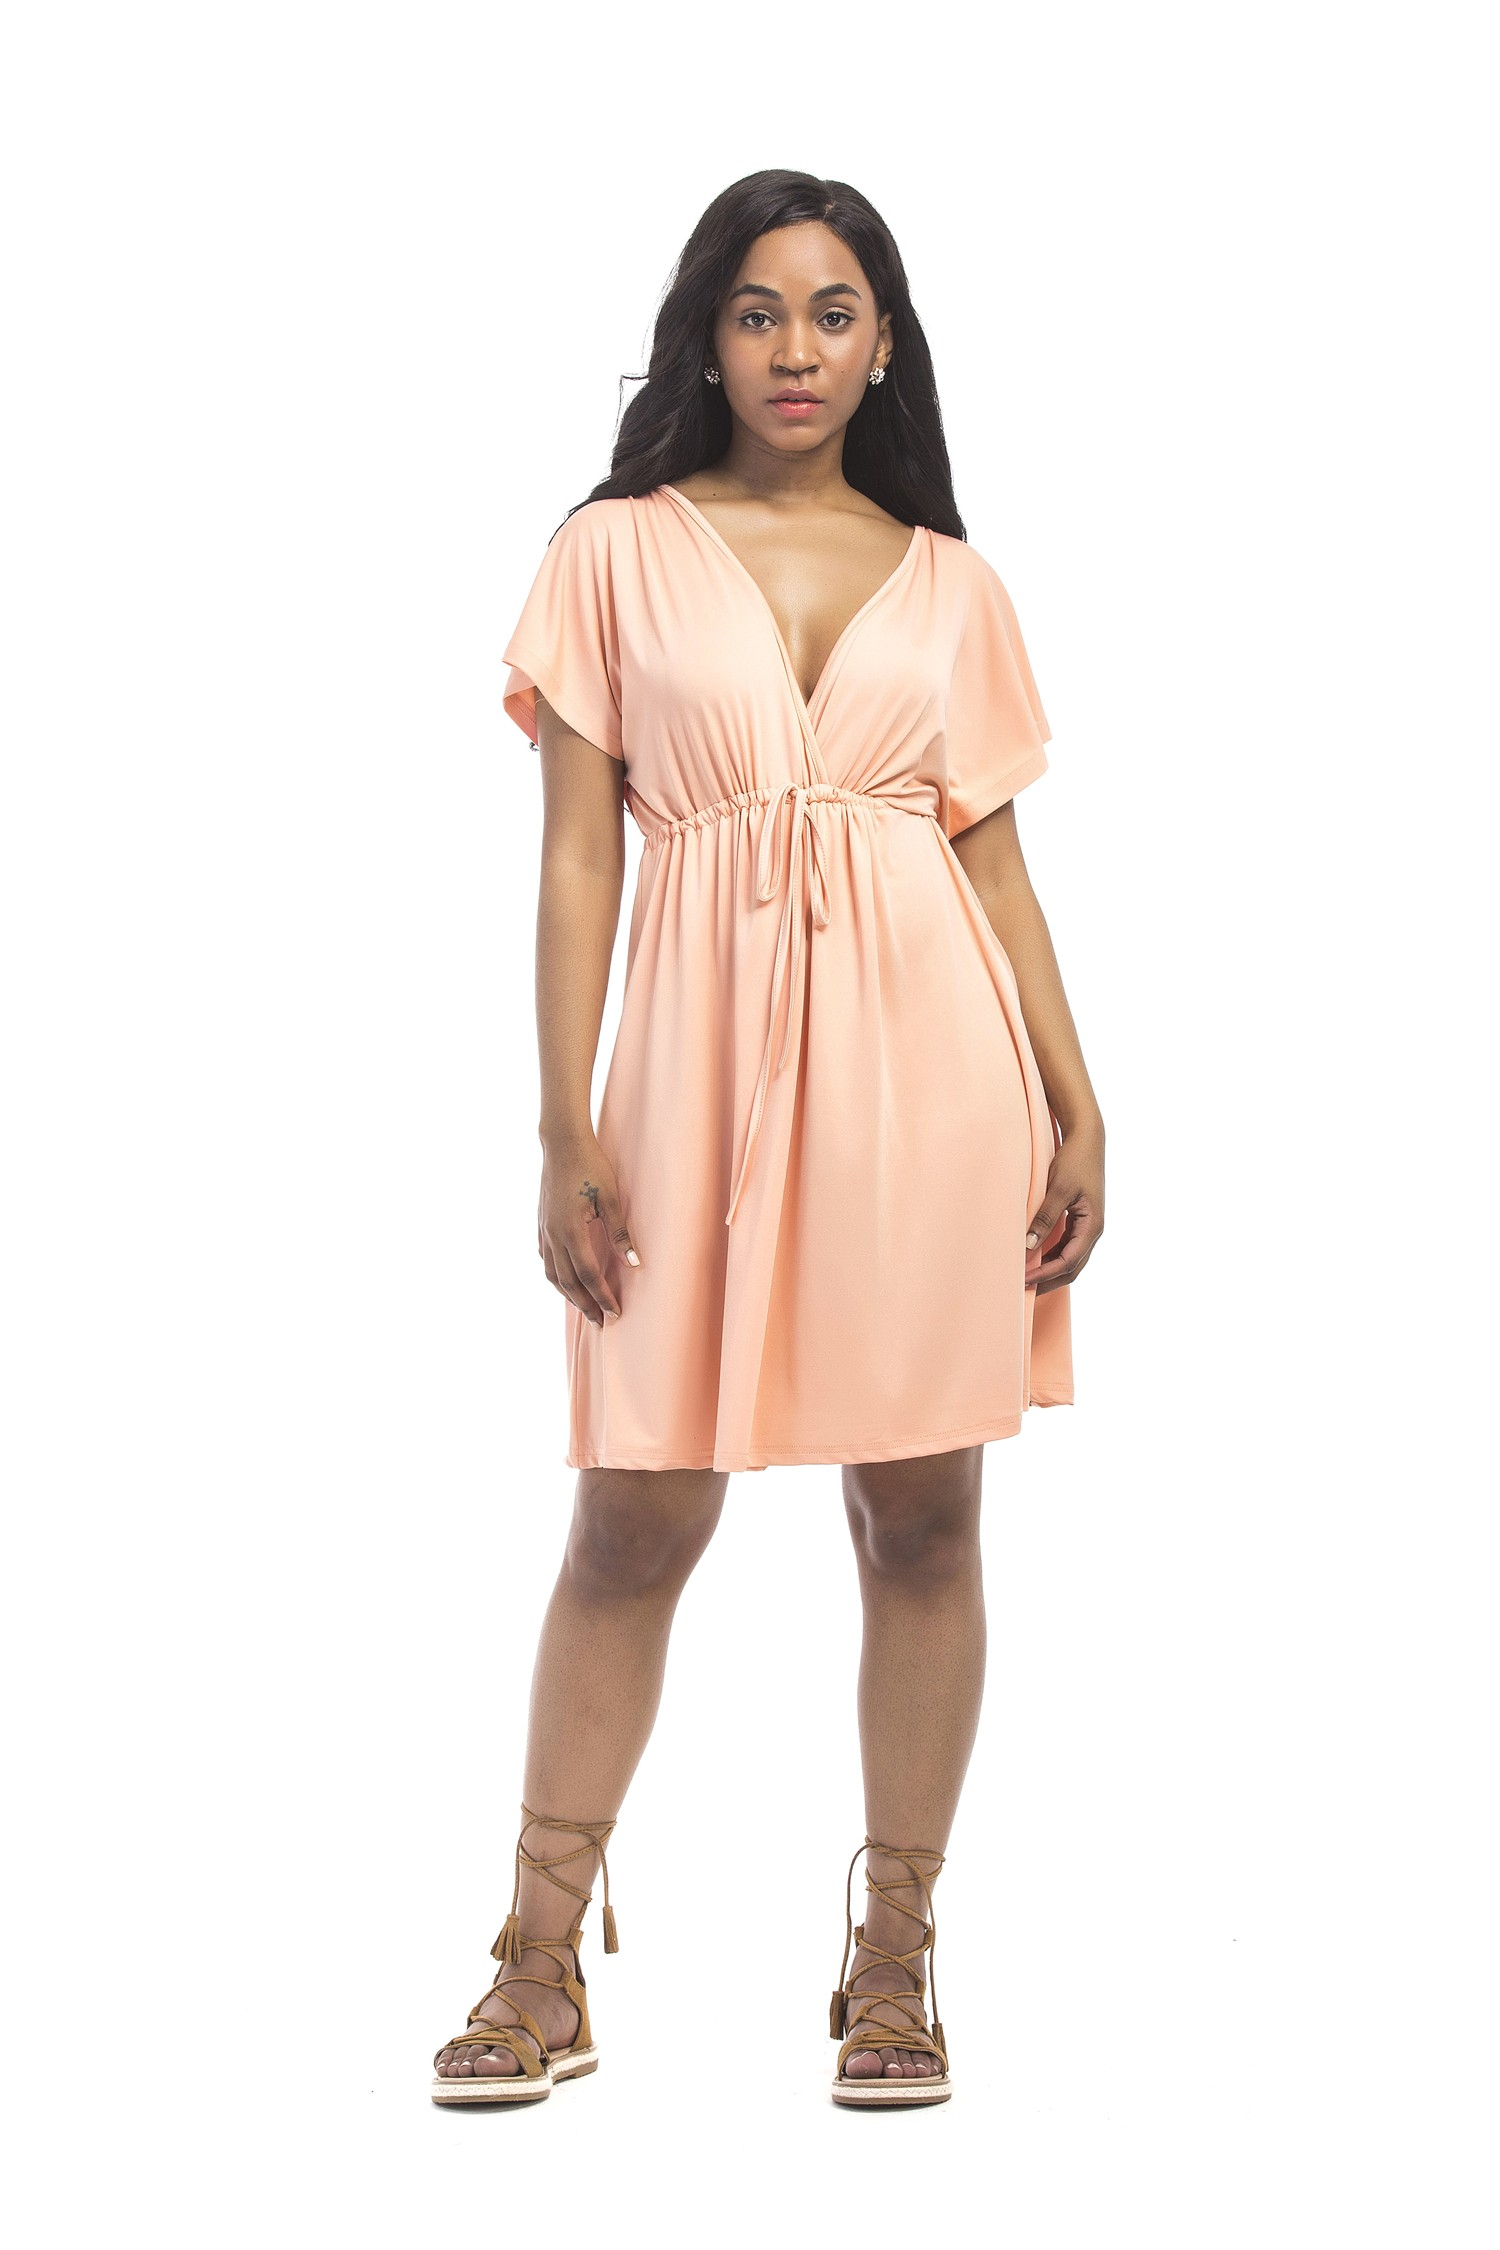 826afbf0cc80 Sexy V Neck Empire Waist Short Khaki Jersey Dress With Sleeves lightbox  moreview · lightbox moreview · lightbox moreview